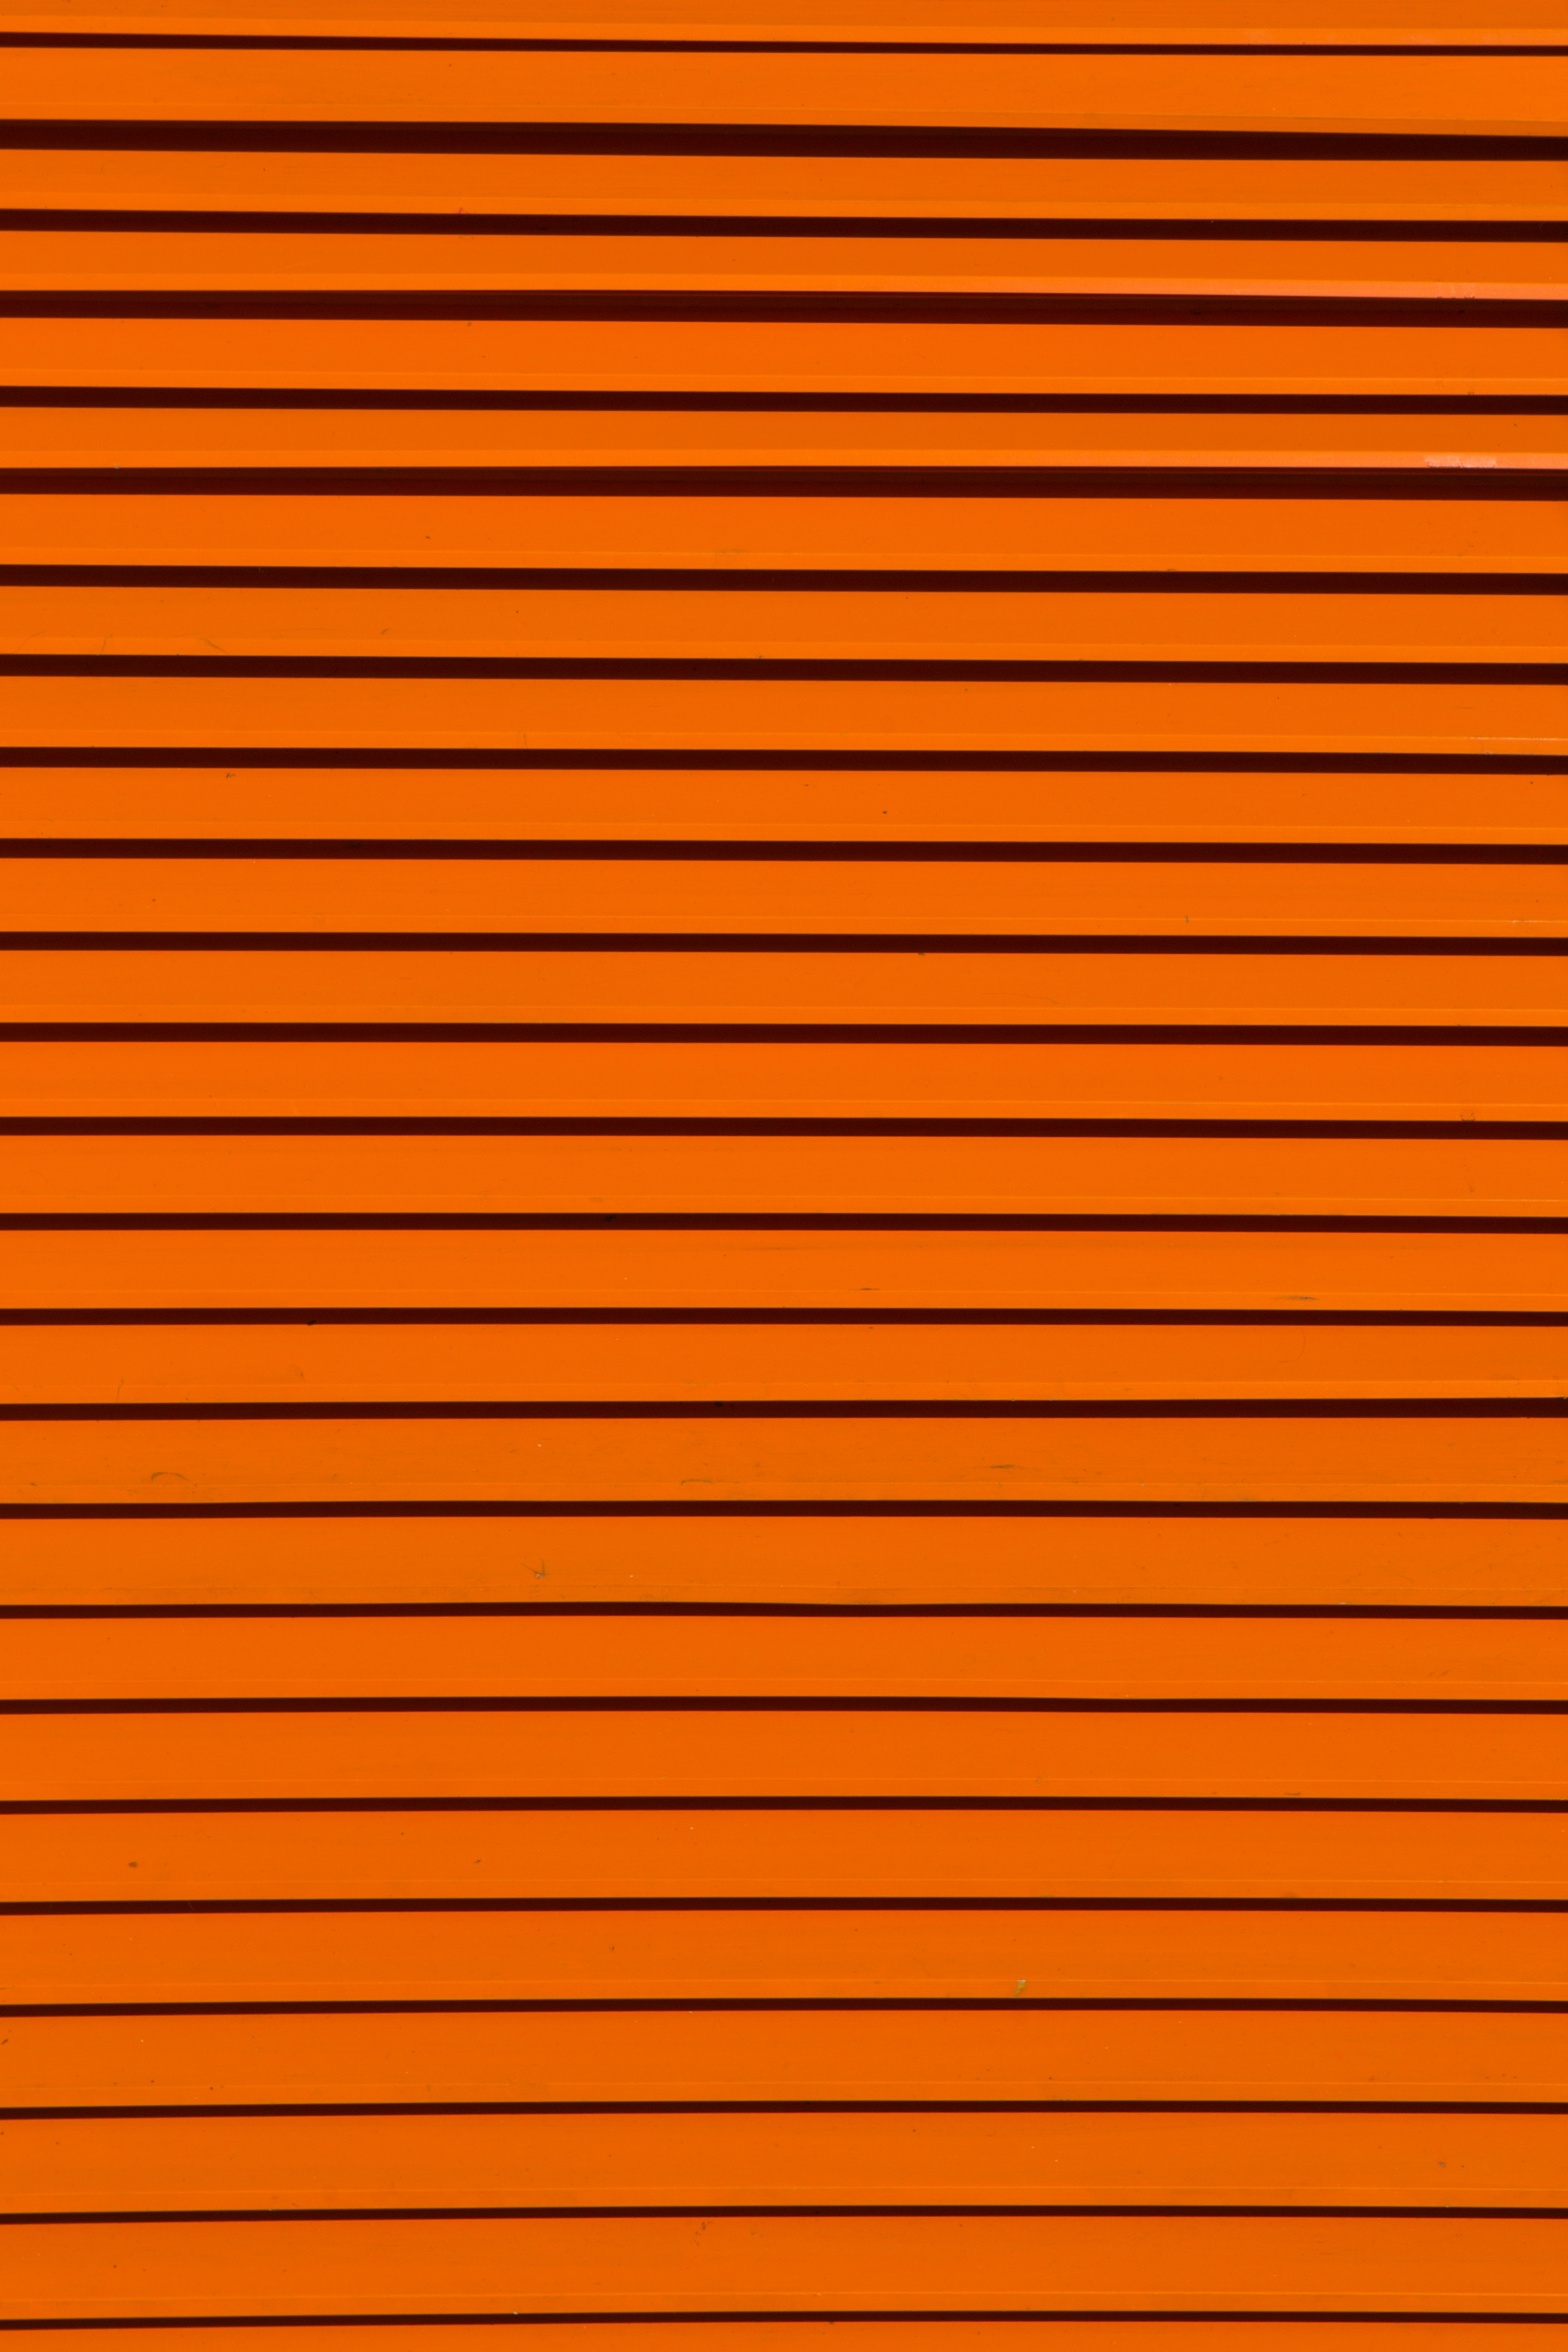 146506 free download Orange wallpapers for phone, Textures, Texture, Lines, Surface, Paint Orange images and screensavers for mobile